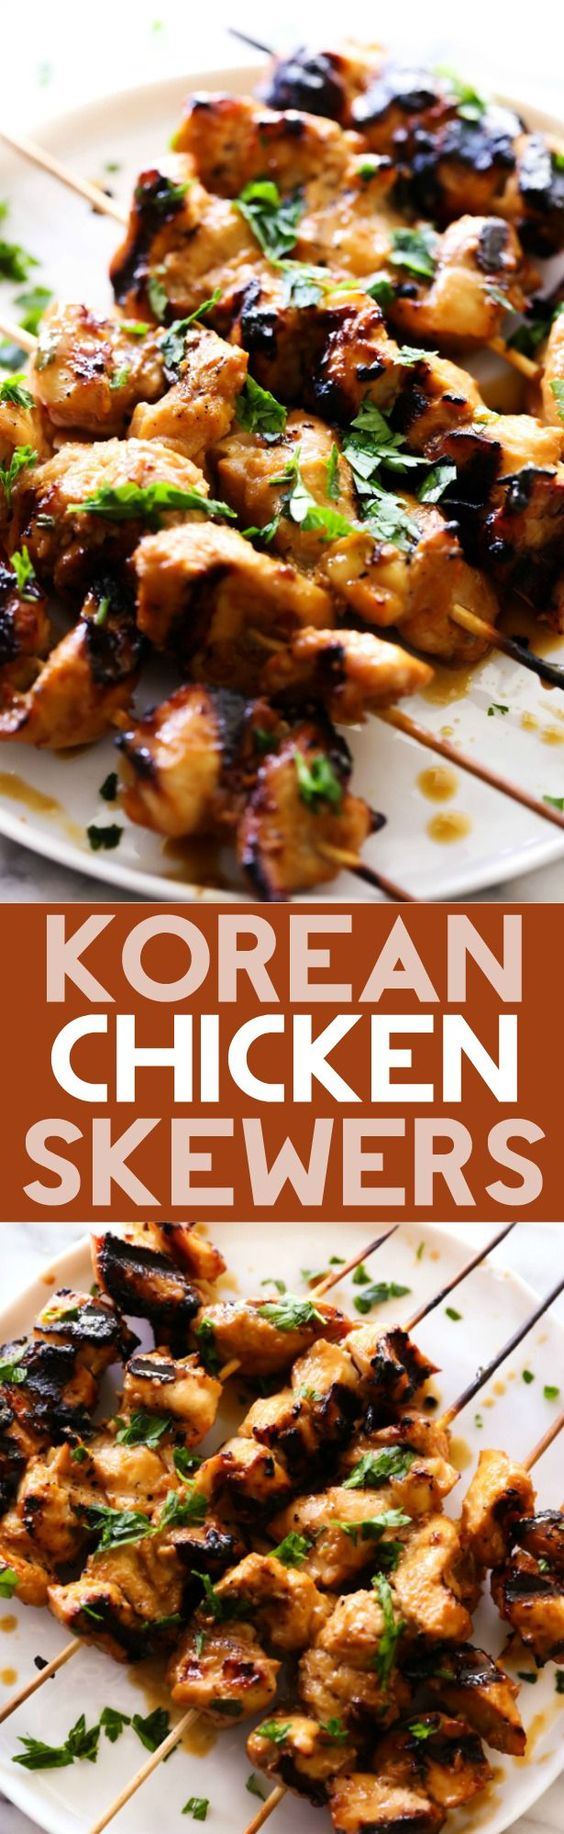 These Korean Chicken Skewers make for an easy and tasty meal. Delicious marinated chicken is grilled to perfection with a refreshing flavor.